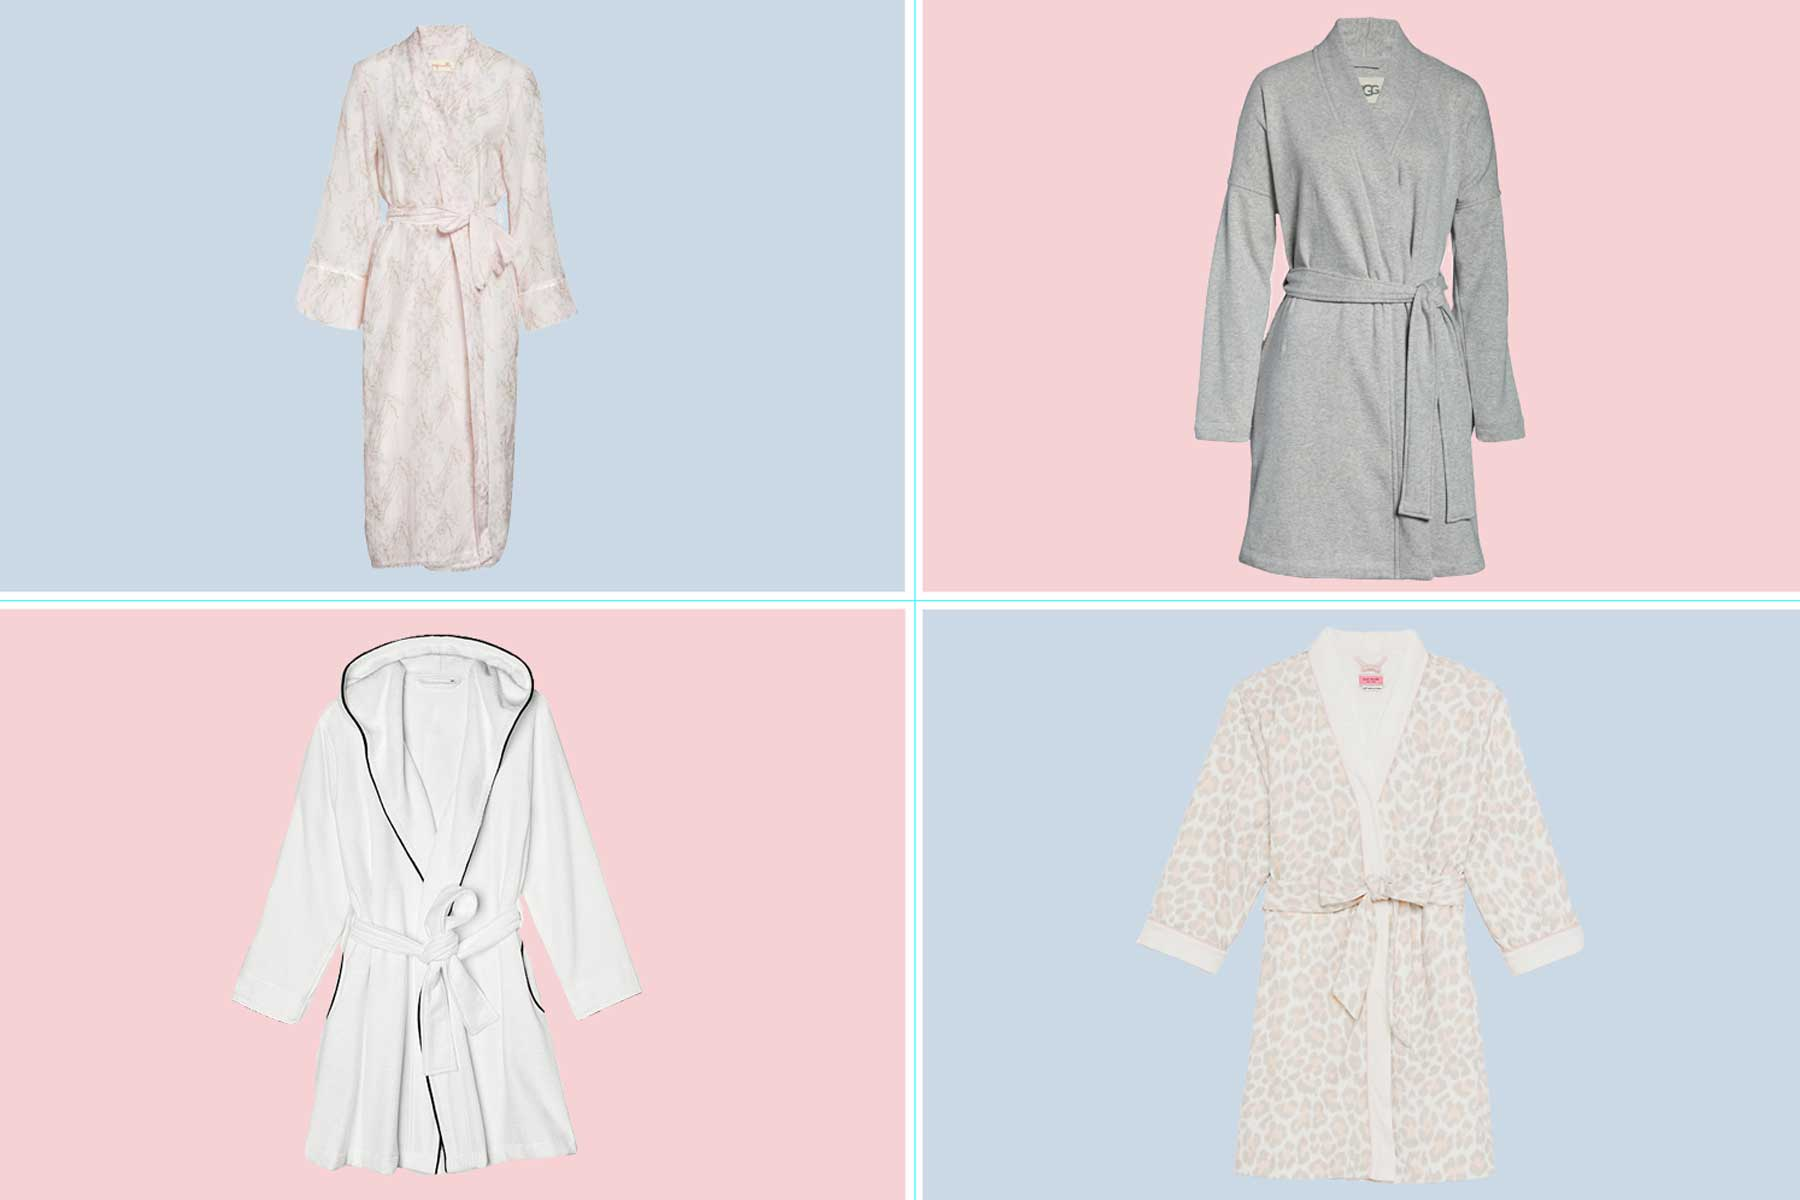 Women's bathrobes from Nordstrom, Bloomingdales, and Kate Spade